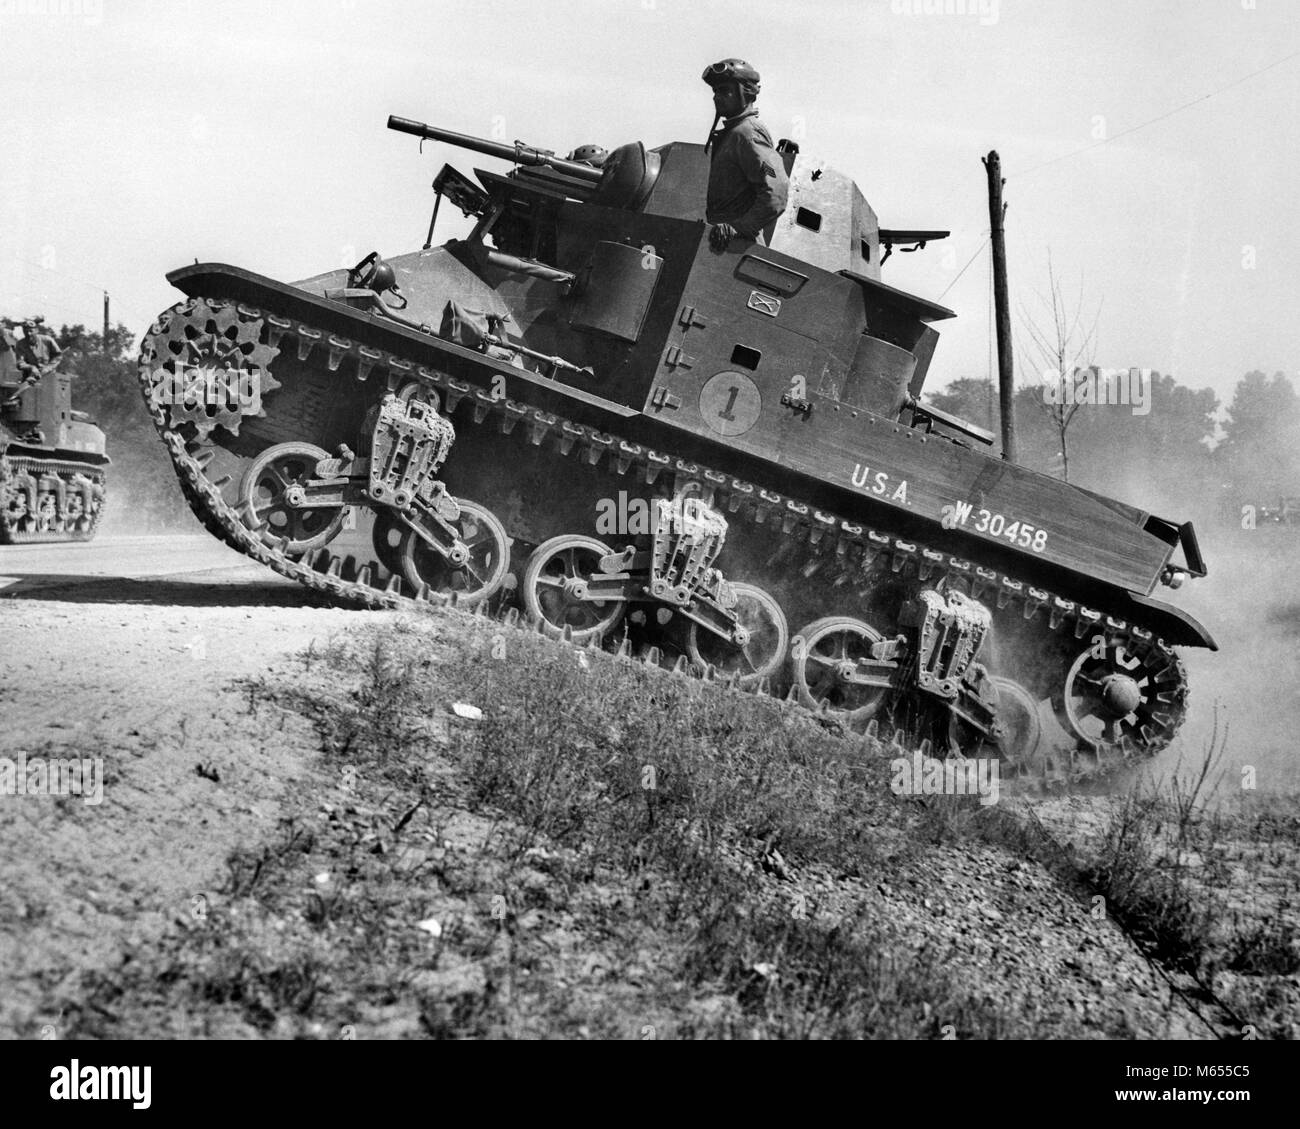 1930s 1940s SMALL AMERICAN ARMY M2 LIGHT TANK ON AN INCLINE BY SIDE OF ROAD - a2434 HAR001 HARS EXCITEMENT WORLD - Stock Image